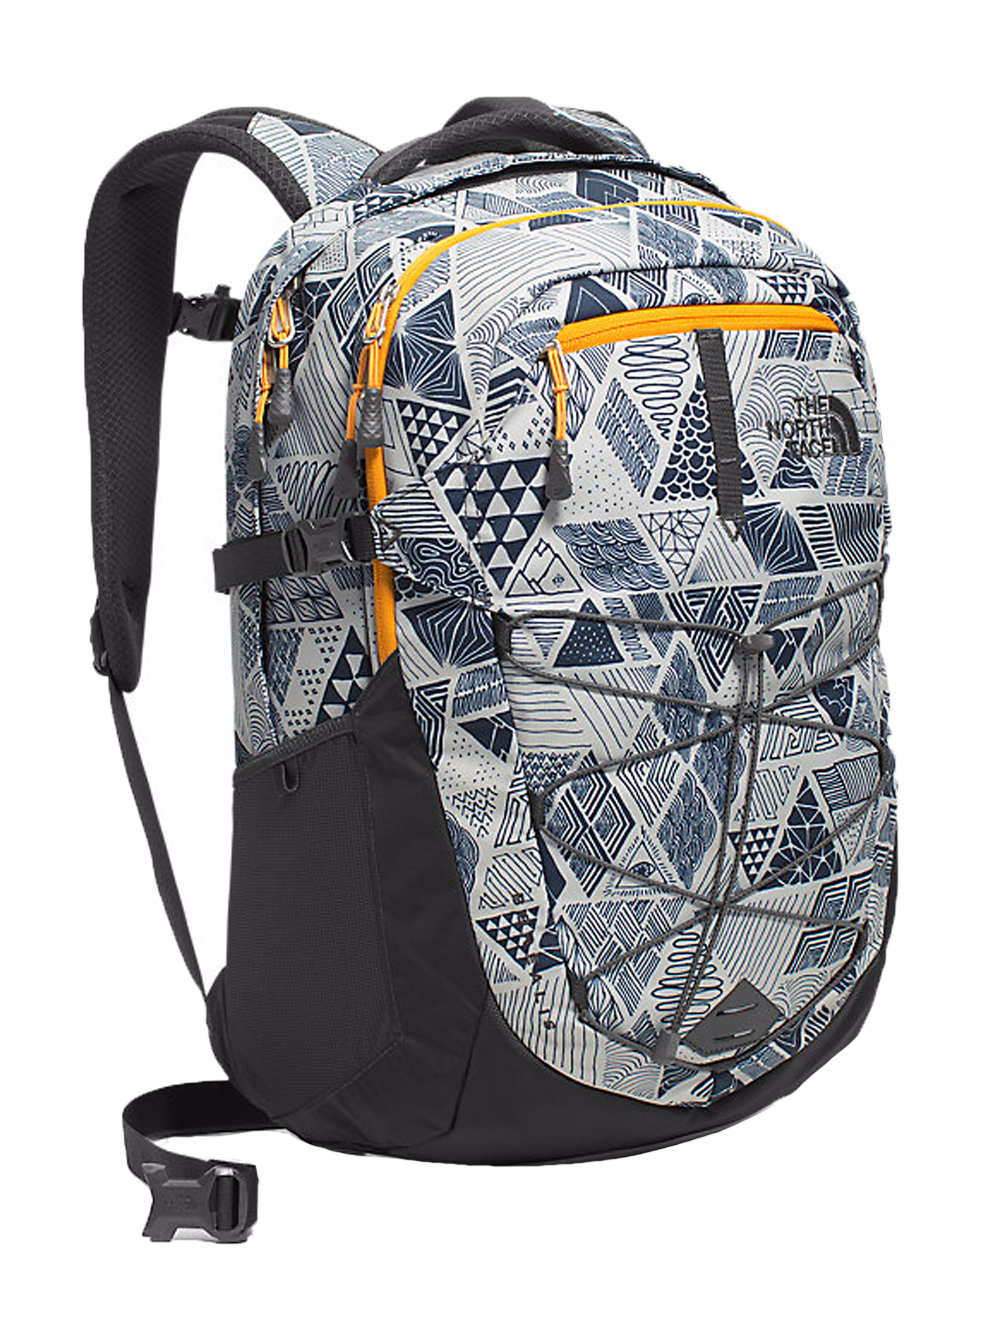 The North Face Borealis Backpack - trickonometry print/radiant yellow, one size